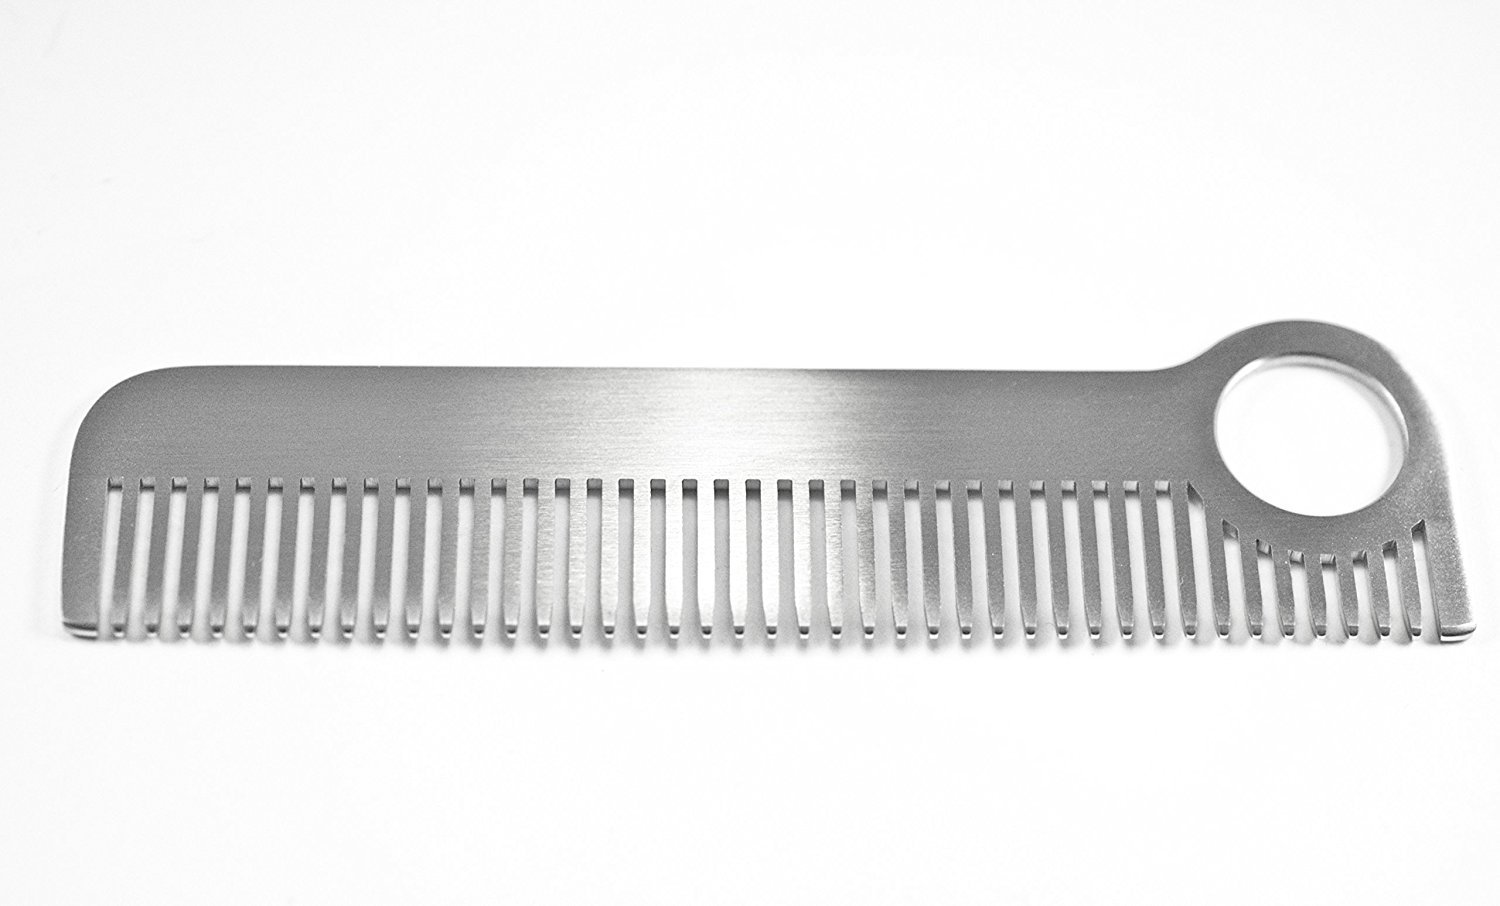 Gorgeous Brushed Matte Finish Solid Stainless Steel Medium Tooth ''Soho Comb'' by TravelMate